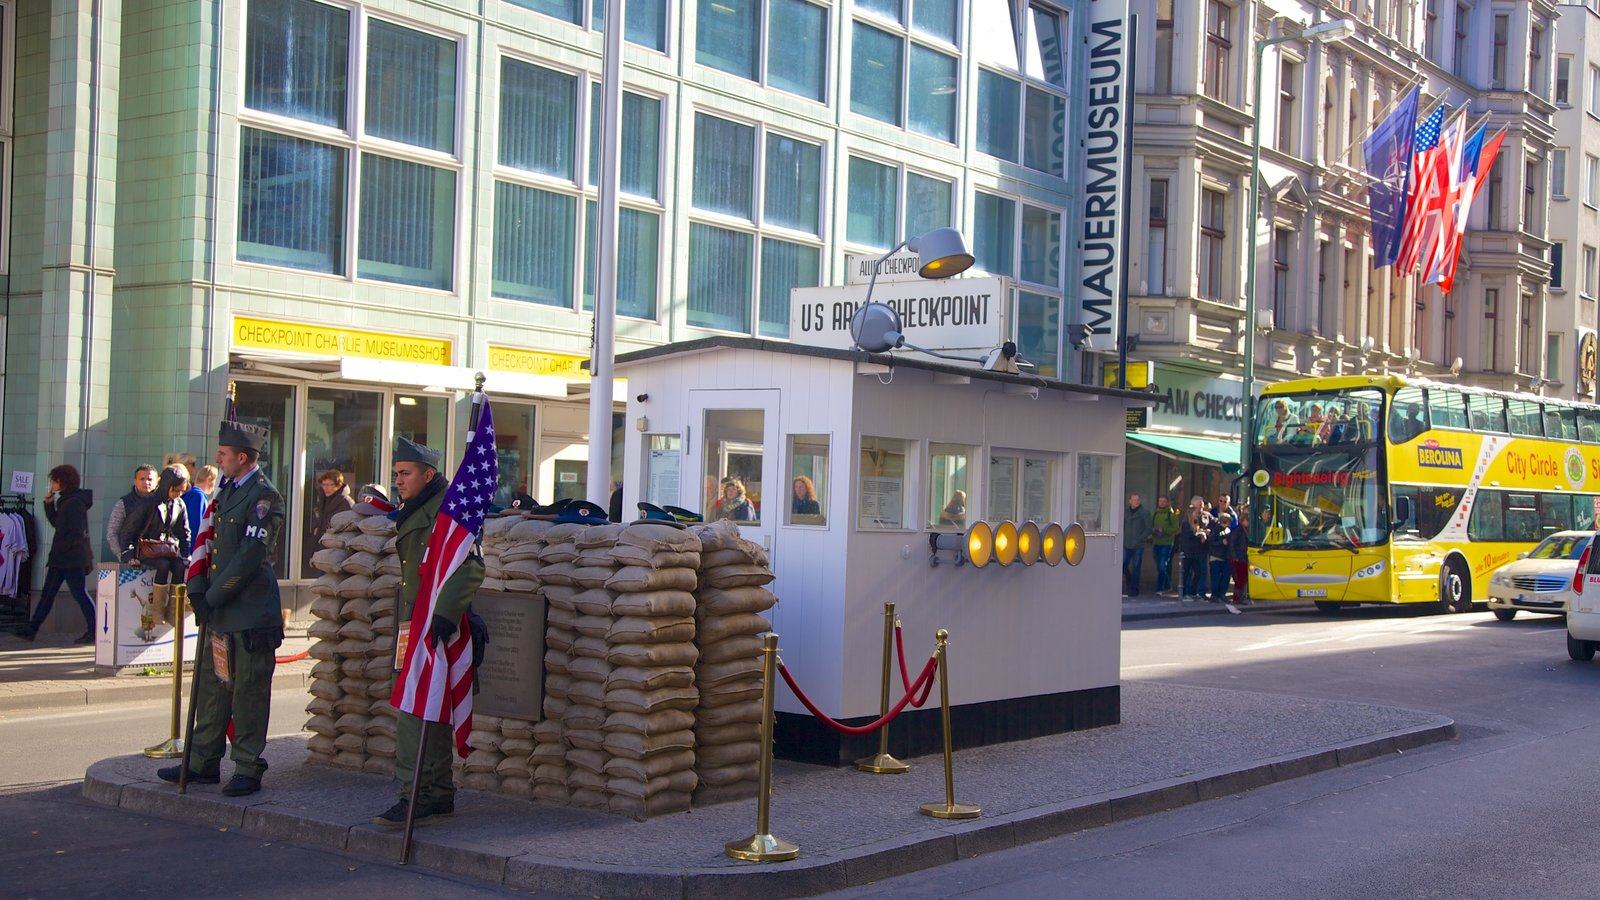 Checkpoint Charlie Museum showing street scenes and a city